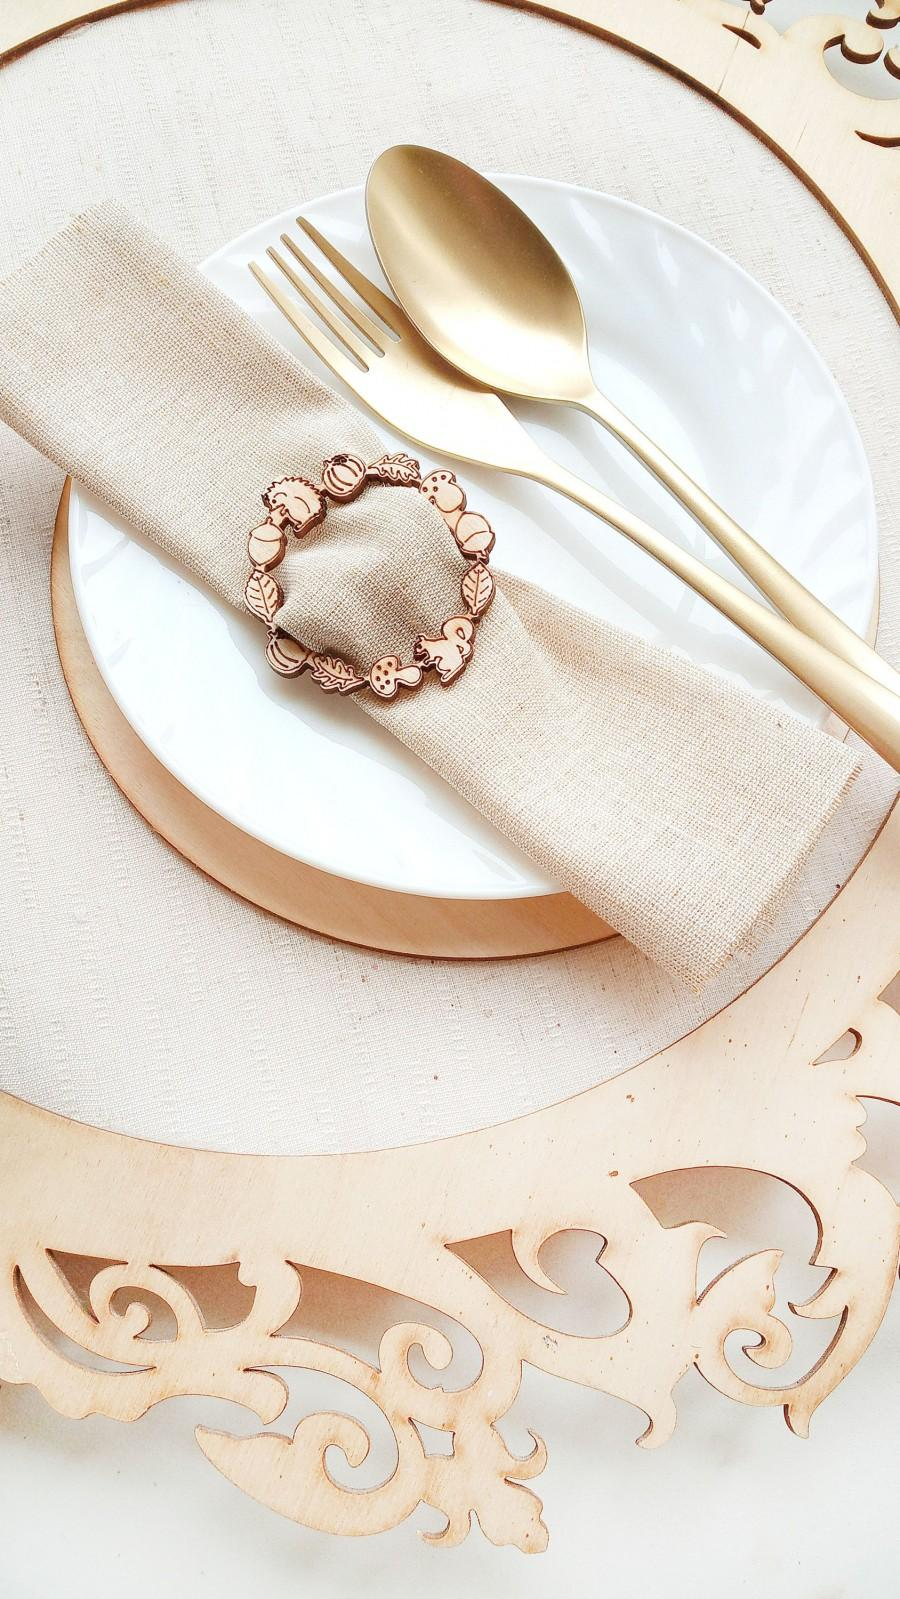 Свадьба - Wooden napkin ring rustic and forest wedding decor